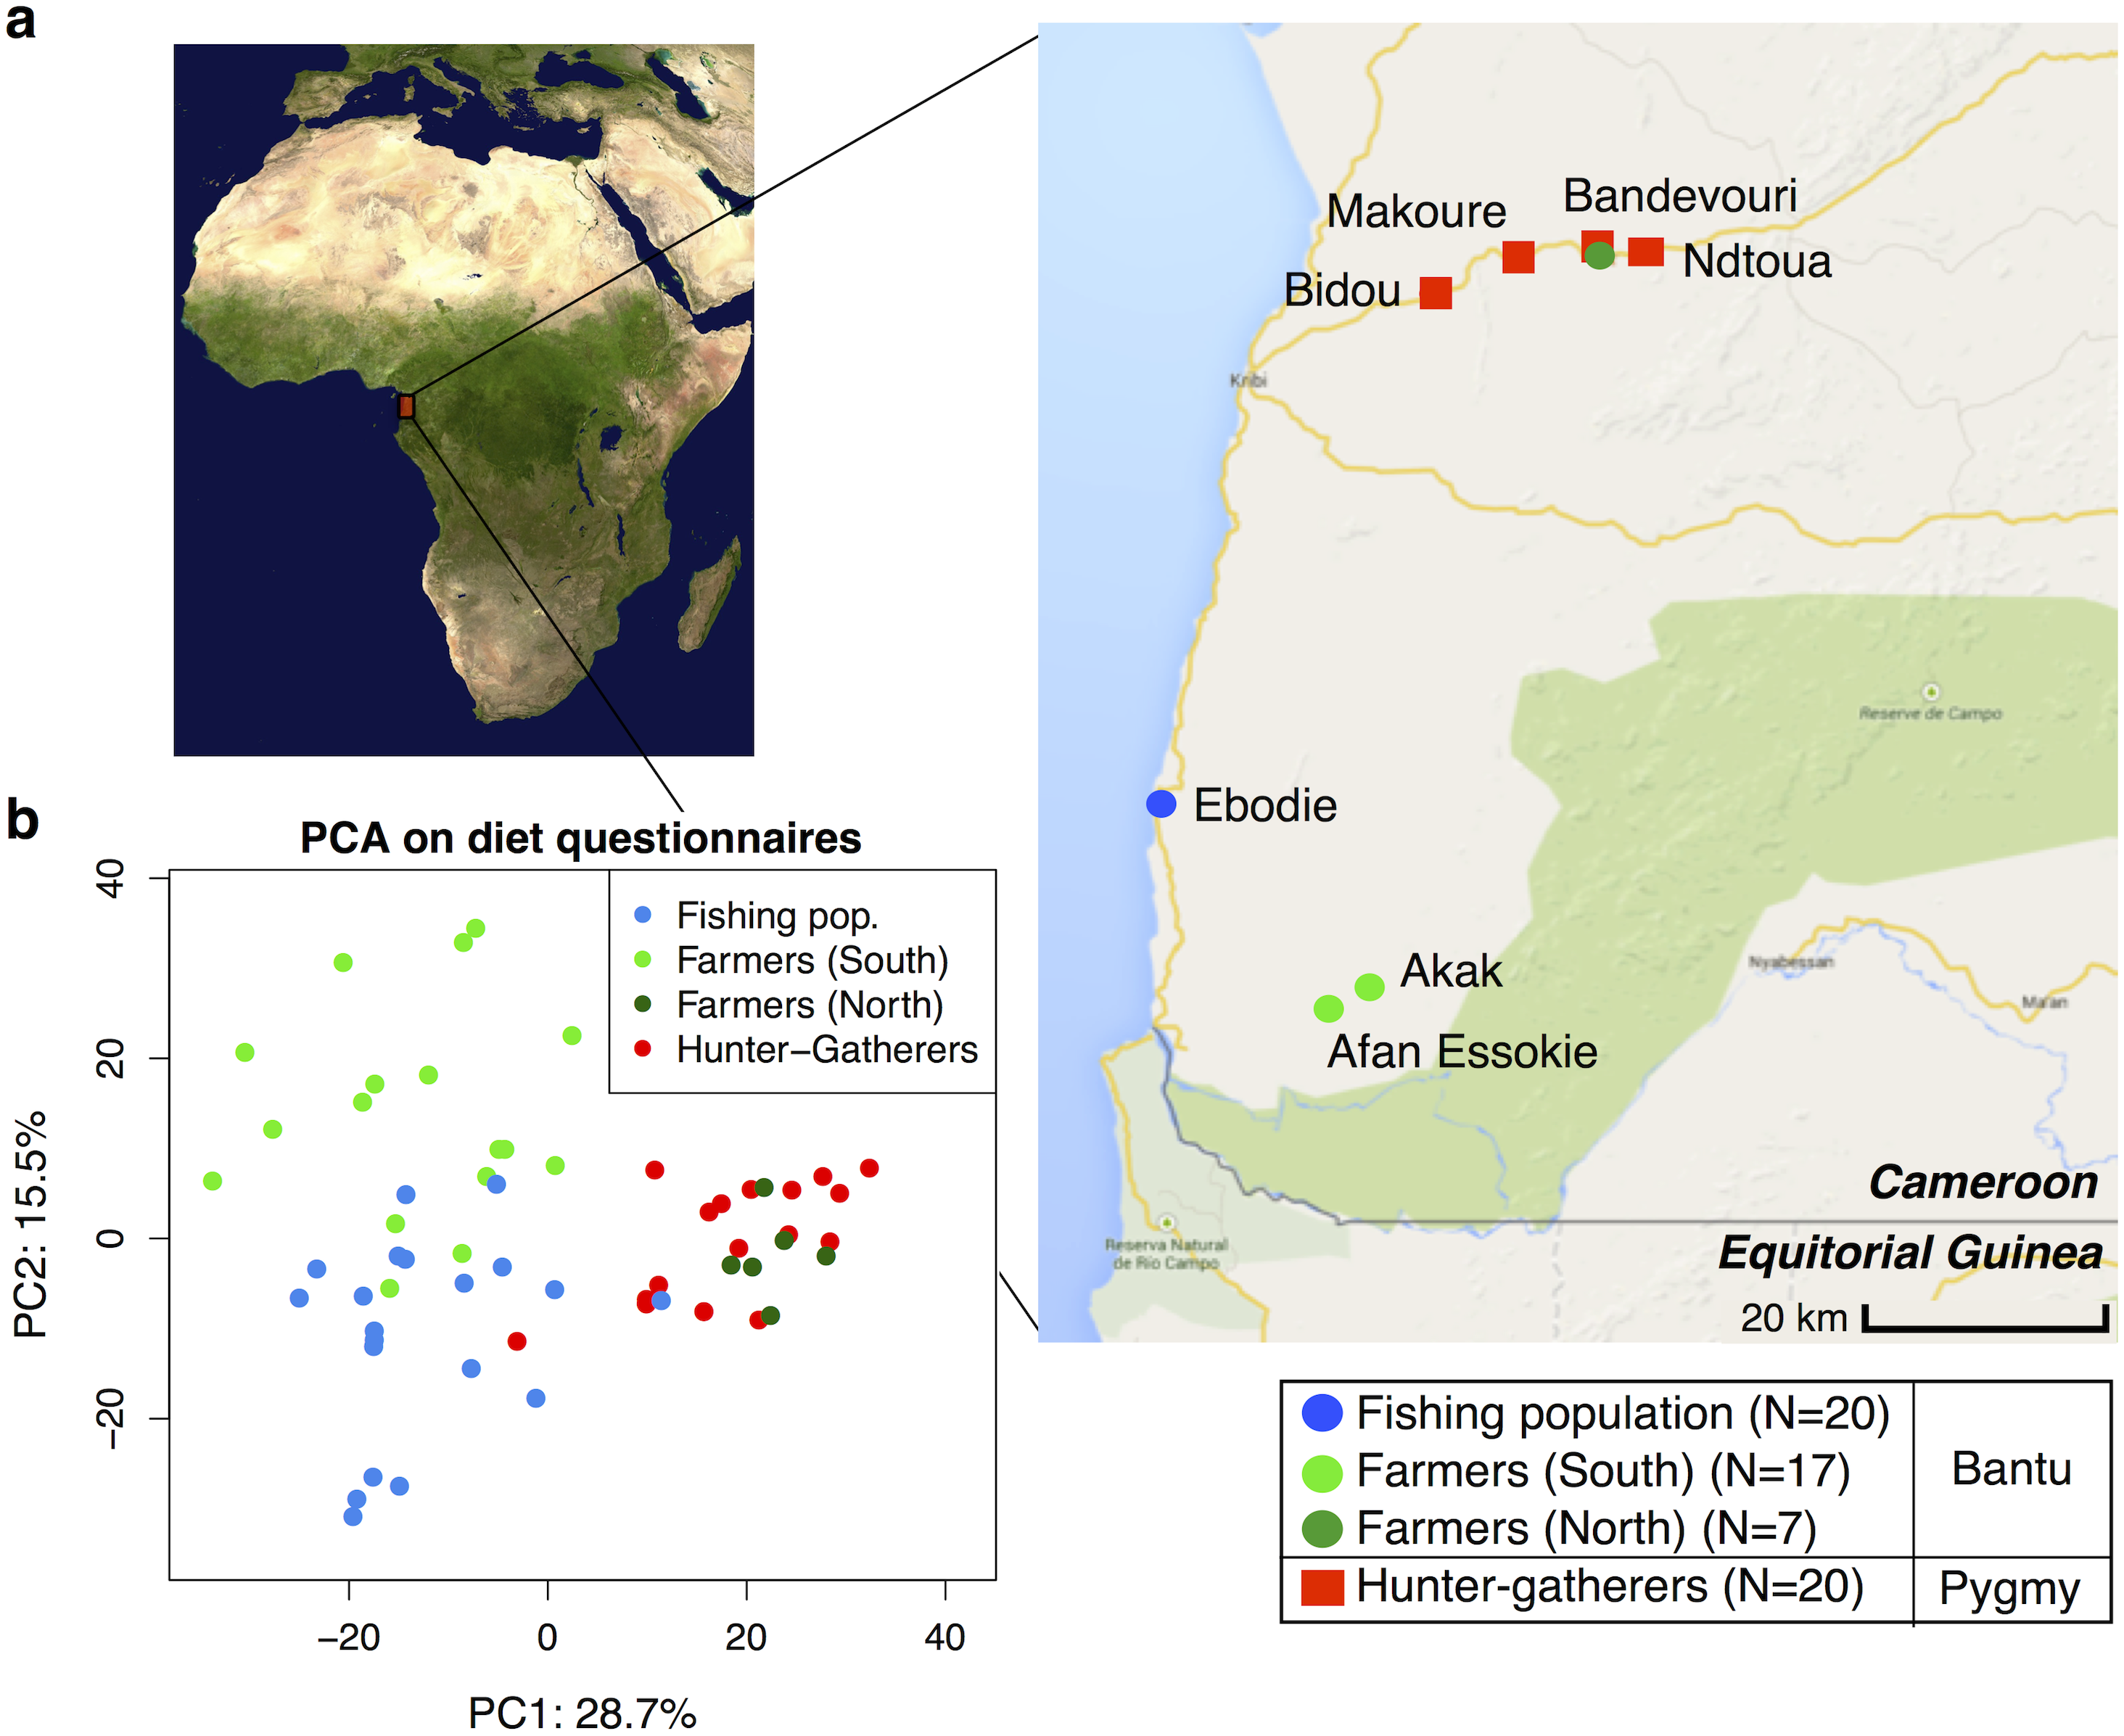 (a) Map showing the geographic locations of the villages sampled in Southwest Cameroon, the number of samples (N) collected for each subsistence group (the fishing population, farmers from the South, farmers from the North, and hunter-gatherers), and their genetic ancestry (Bantu or Pygmy).